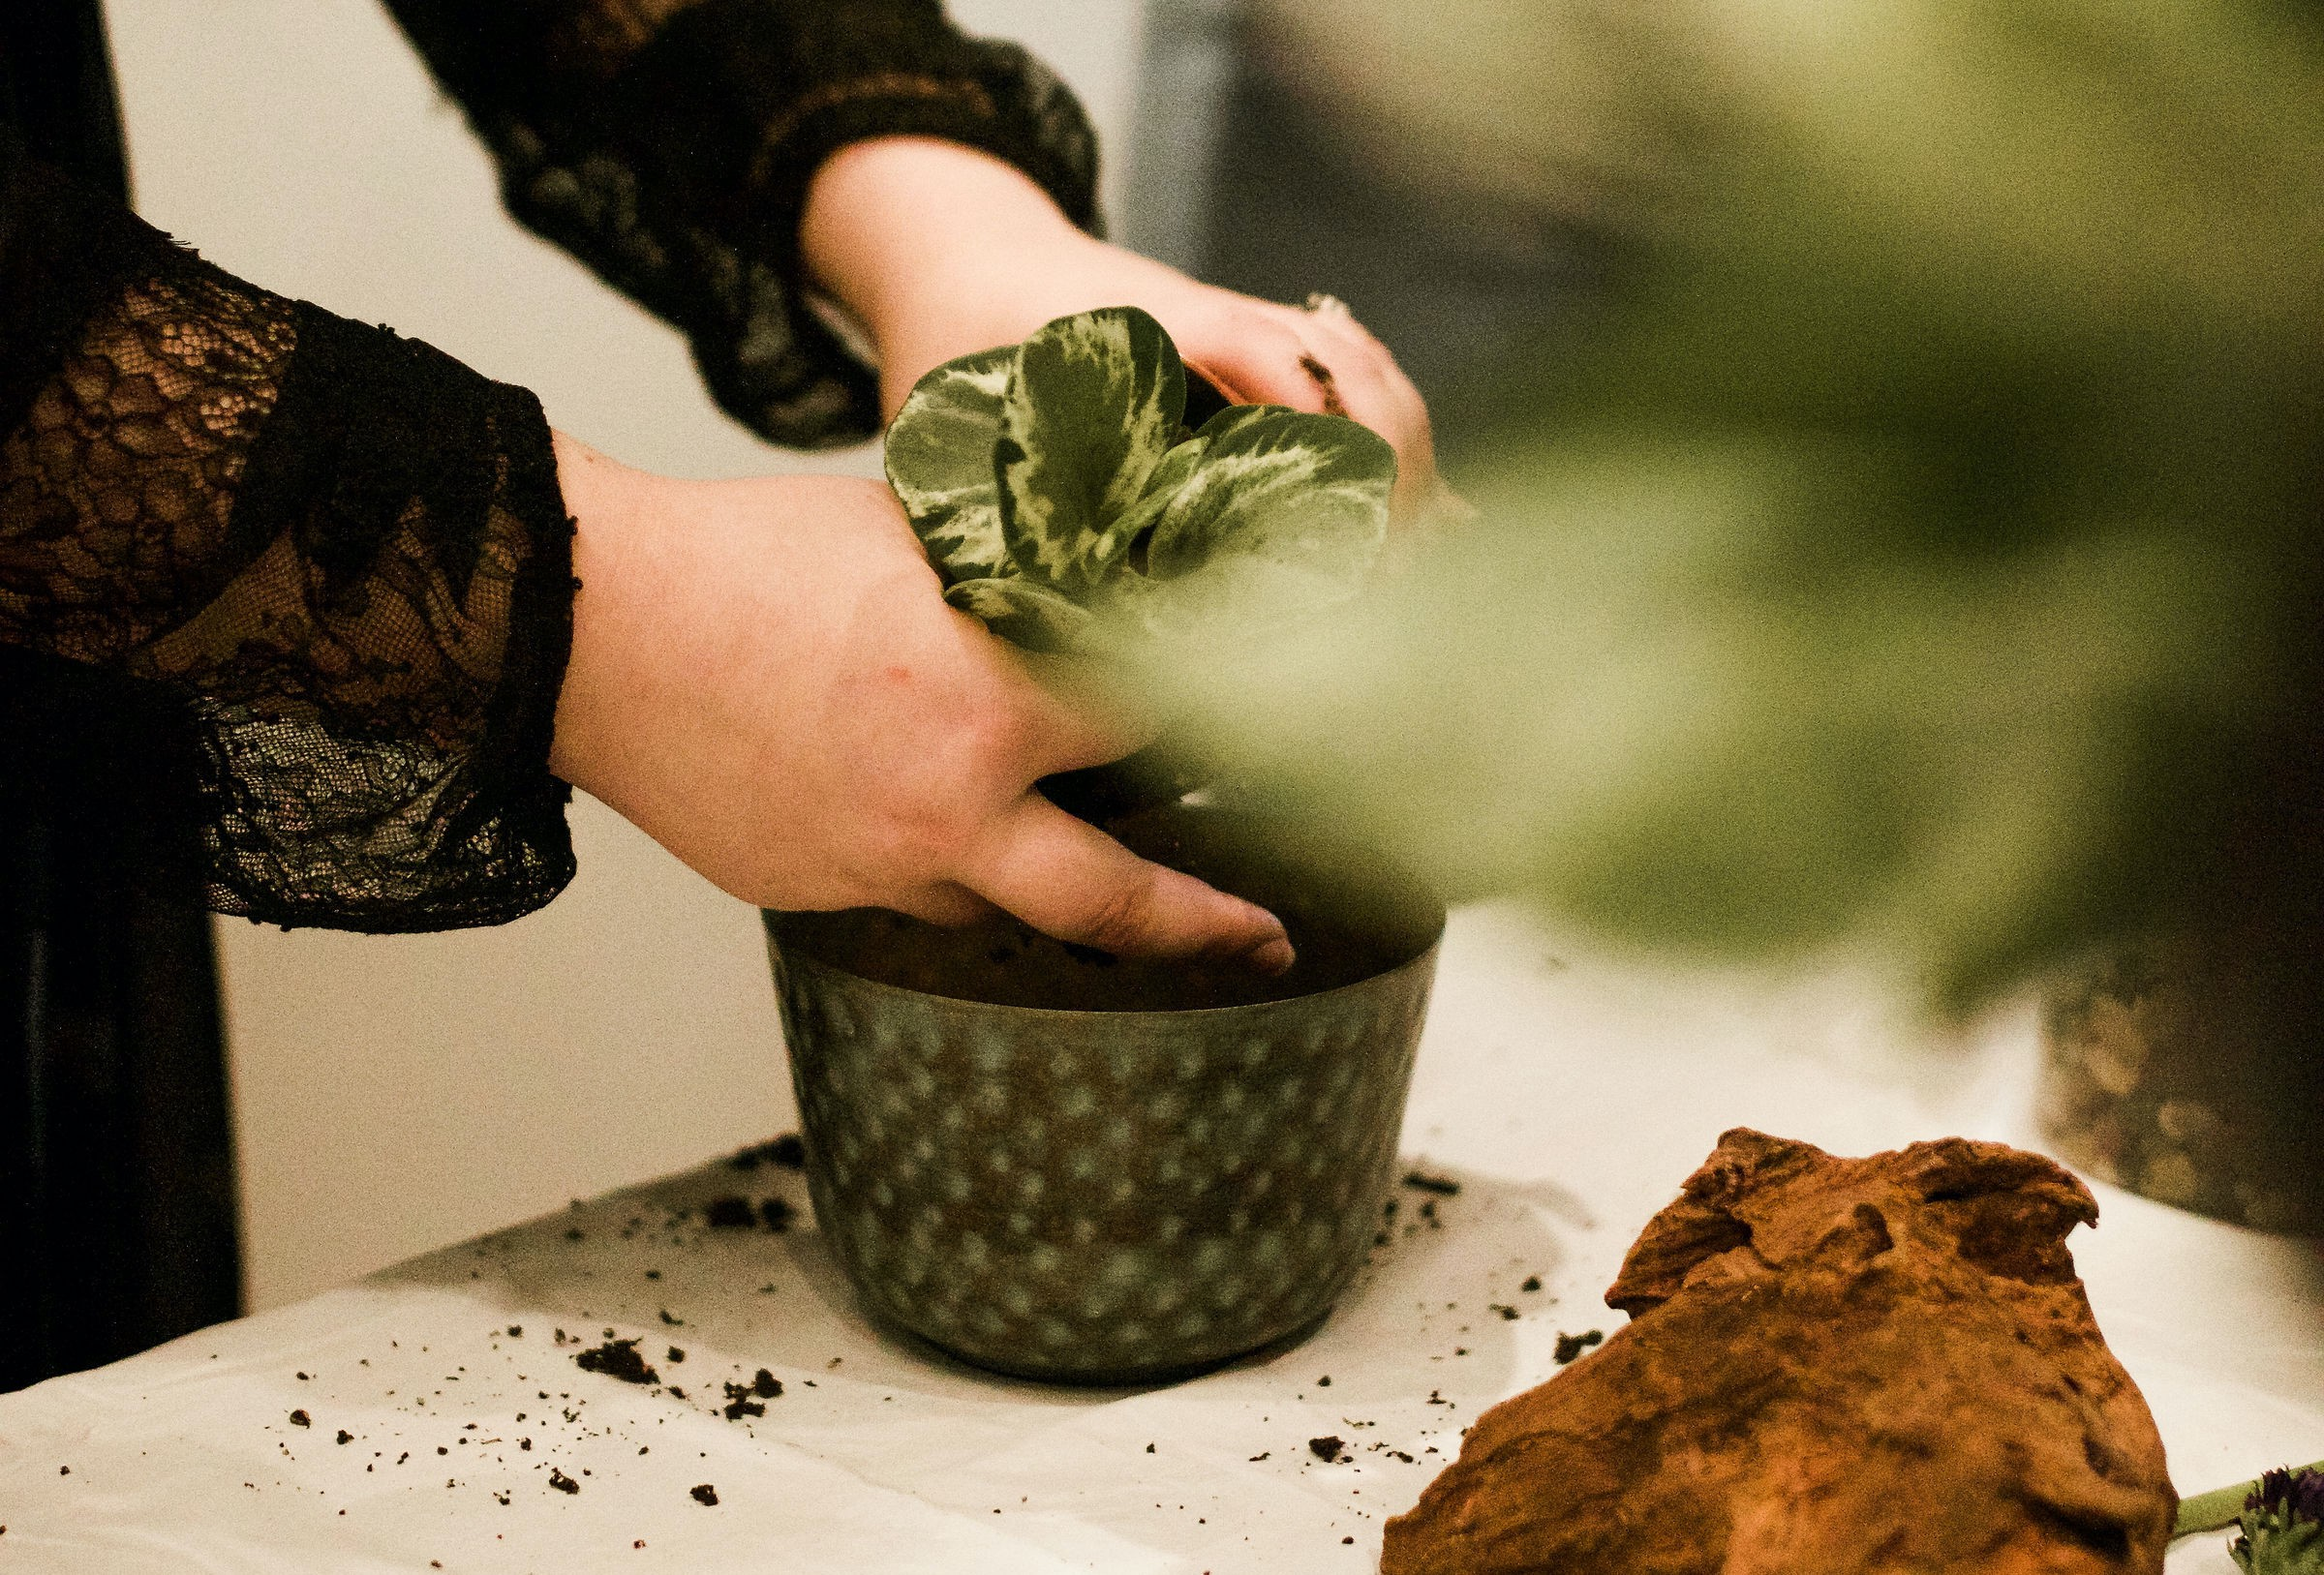 An image of Alida's hands potting a green plant  on top of a table with white tablecloth framed by other foliage.